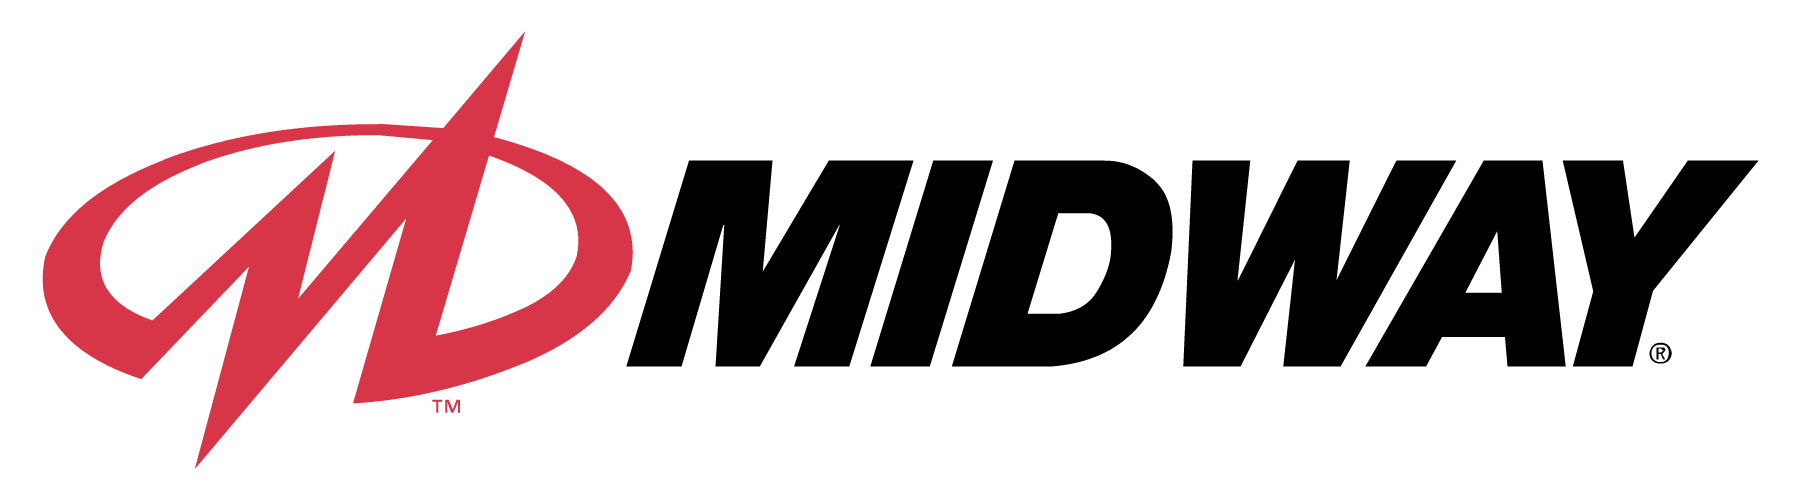 Midway_logo.png